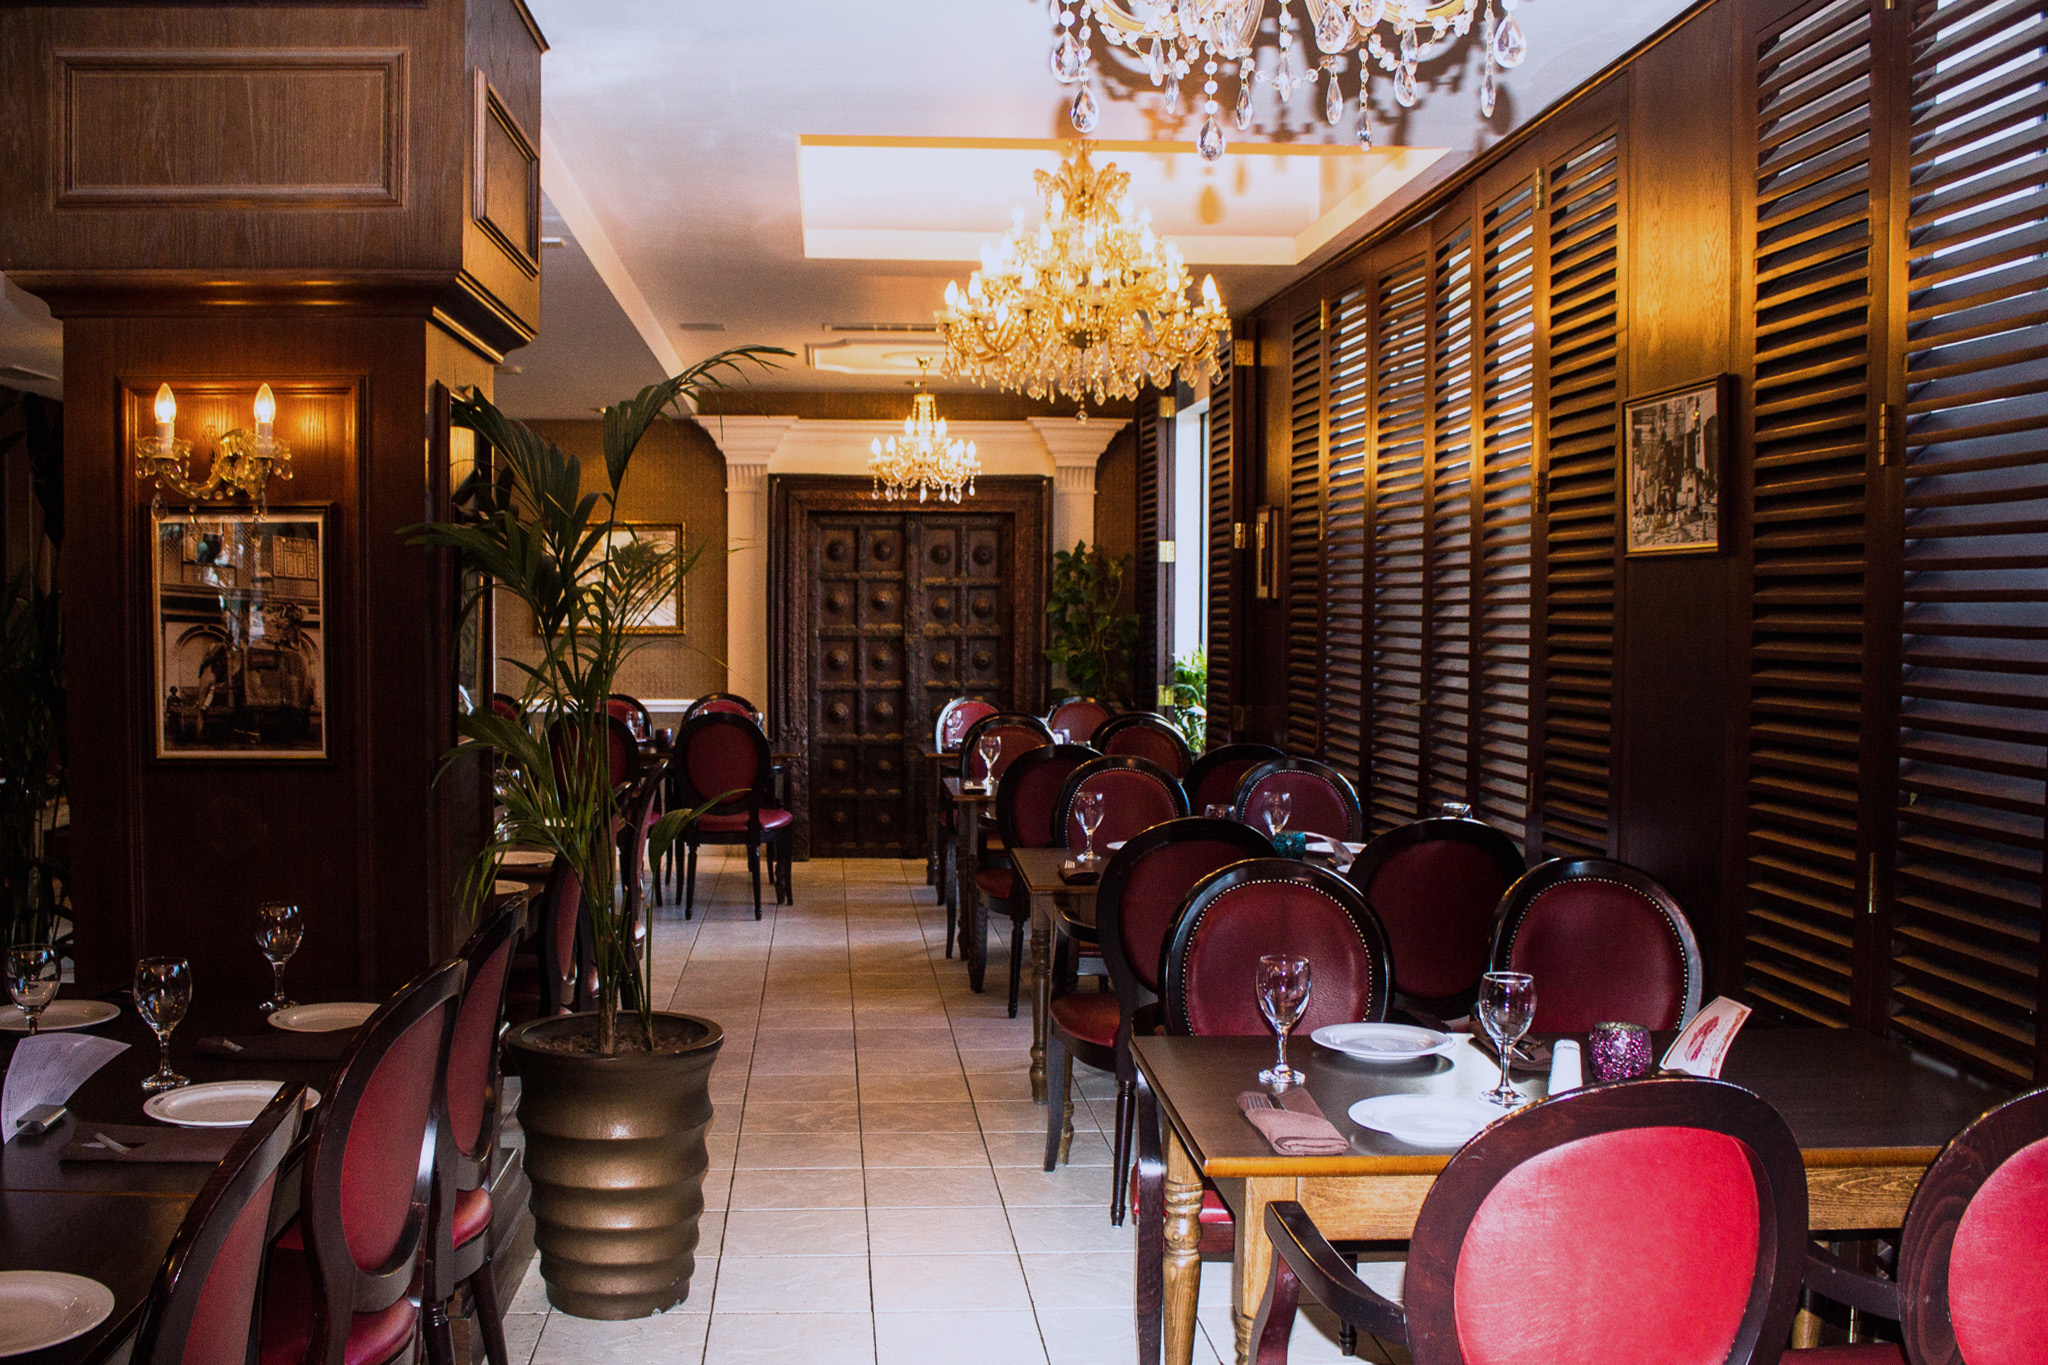 Birmingham39s best indian restaurants time out birmingham for Interior kitchen design birmingham